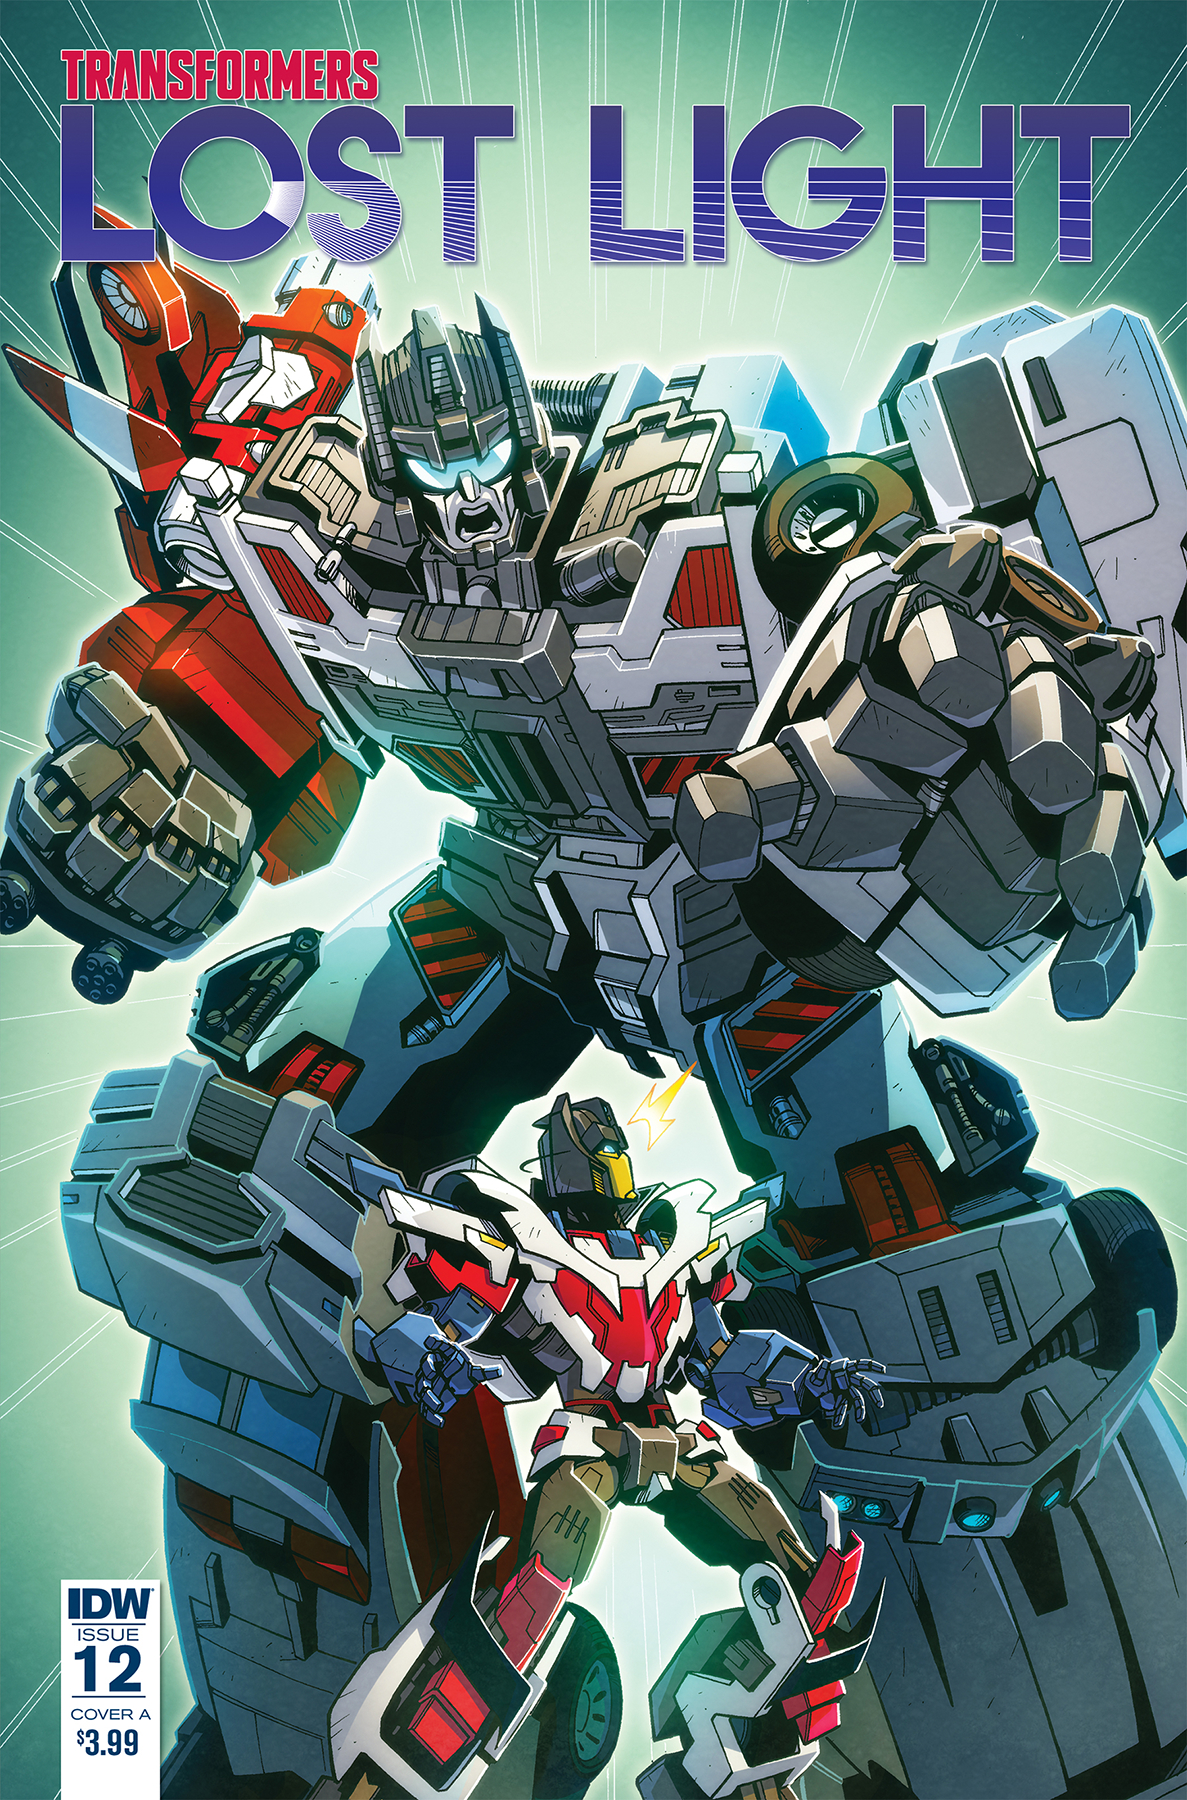 TRANSFORMERS LOST LIGHT #12 CVR C MILNE